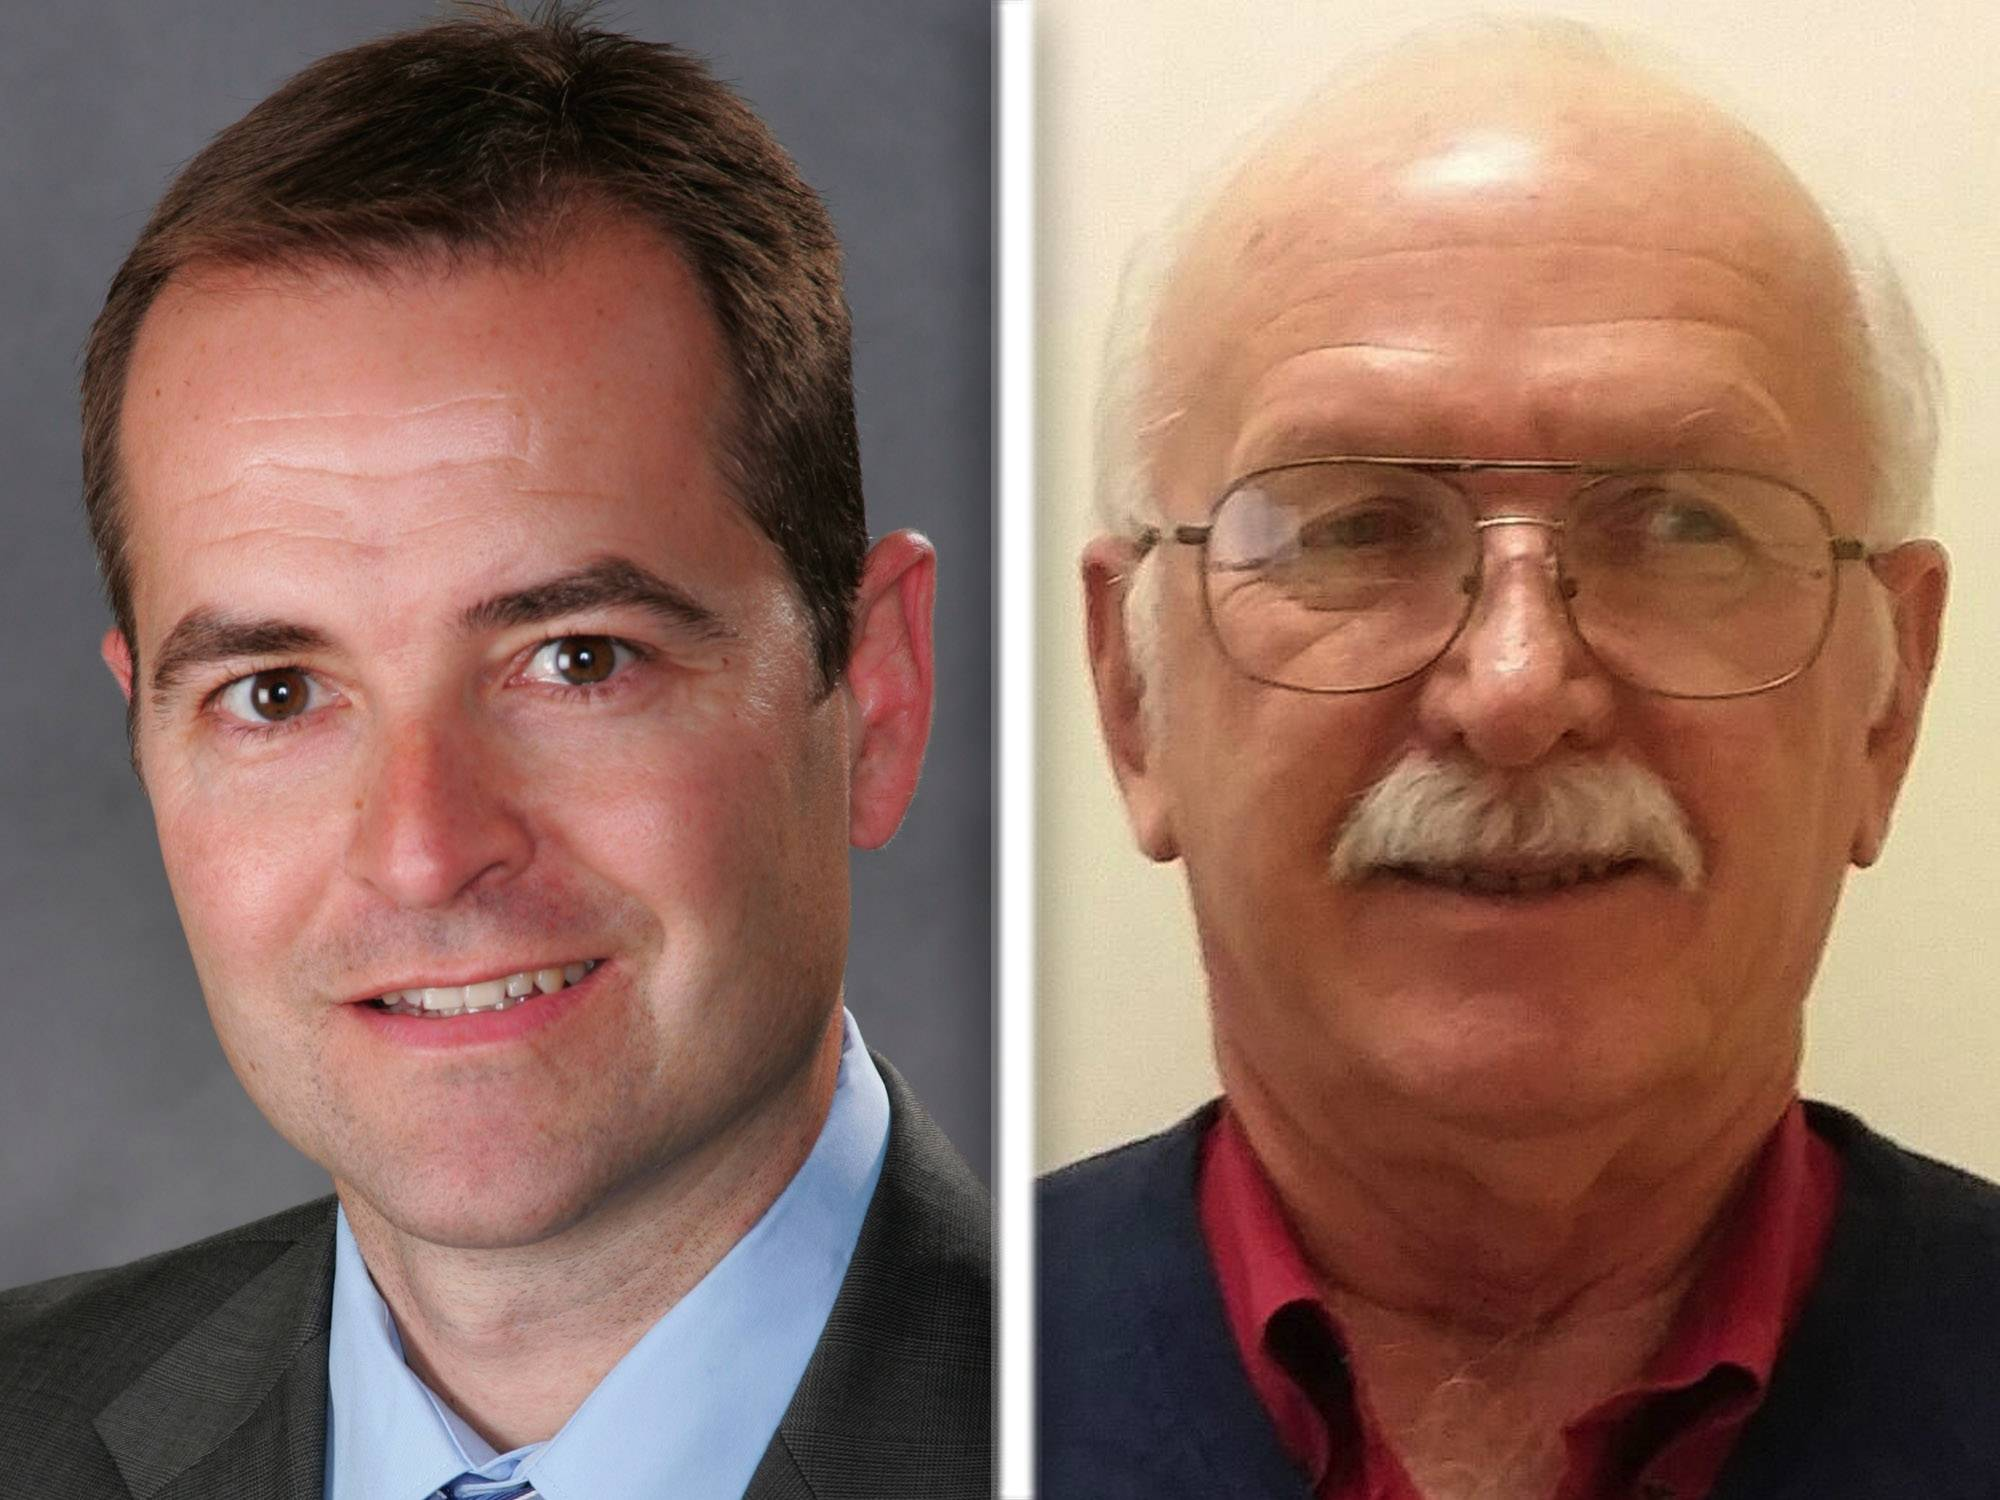 Jim Patrician, left, and Jonathan Radke, right, are Republican candidates for Kane County Board, Dist. 23